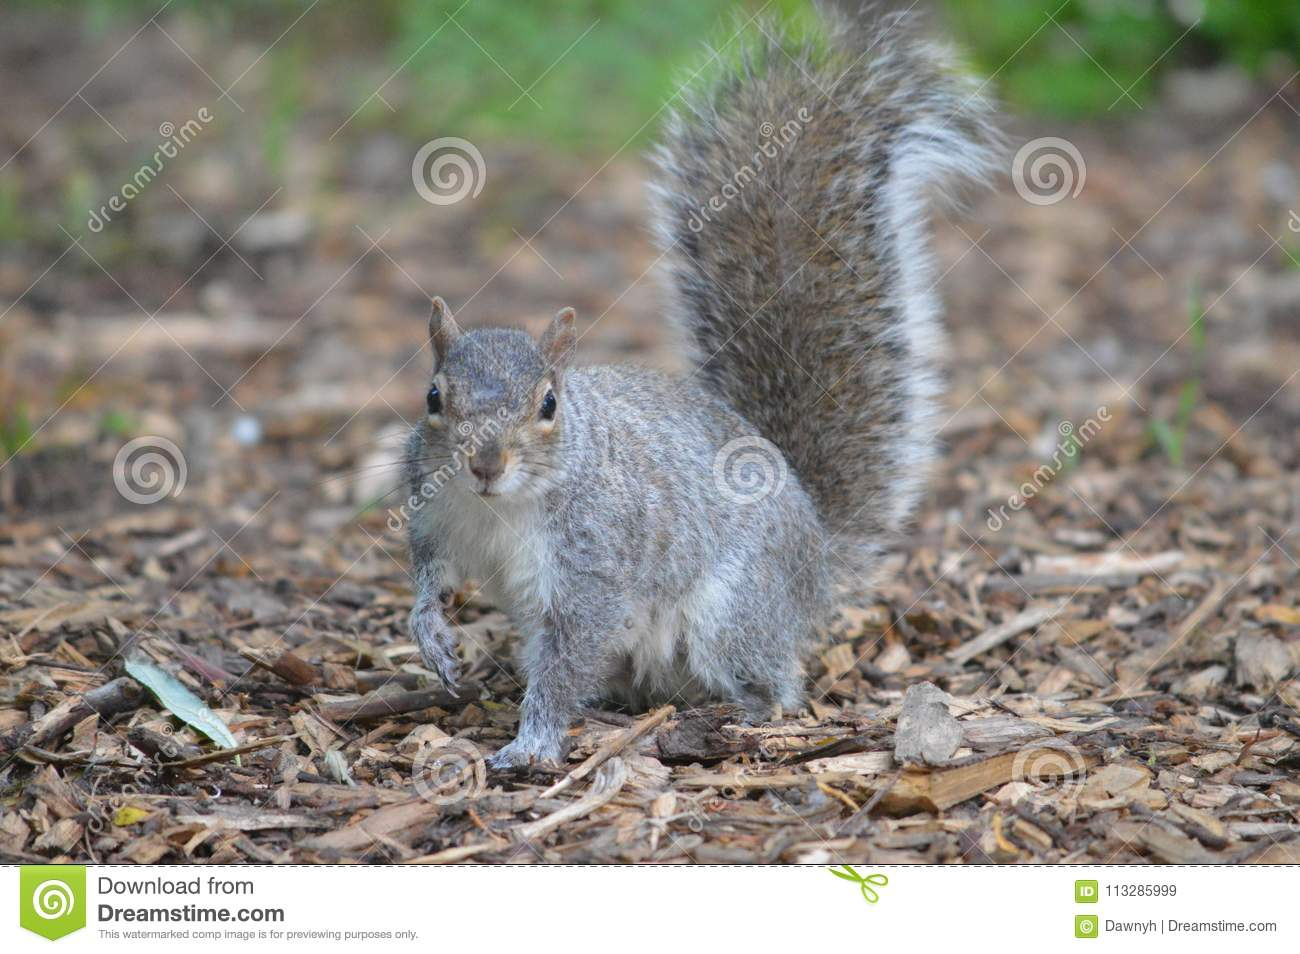 Grey Squirrel en arbolado